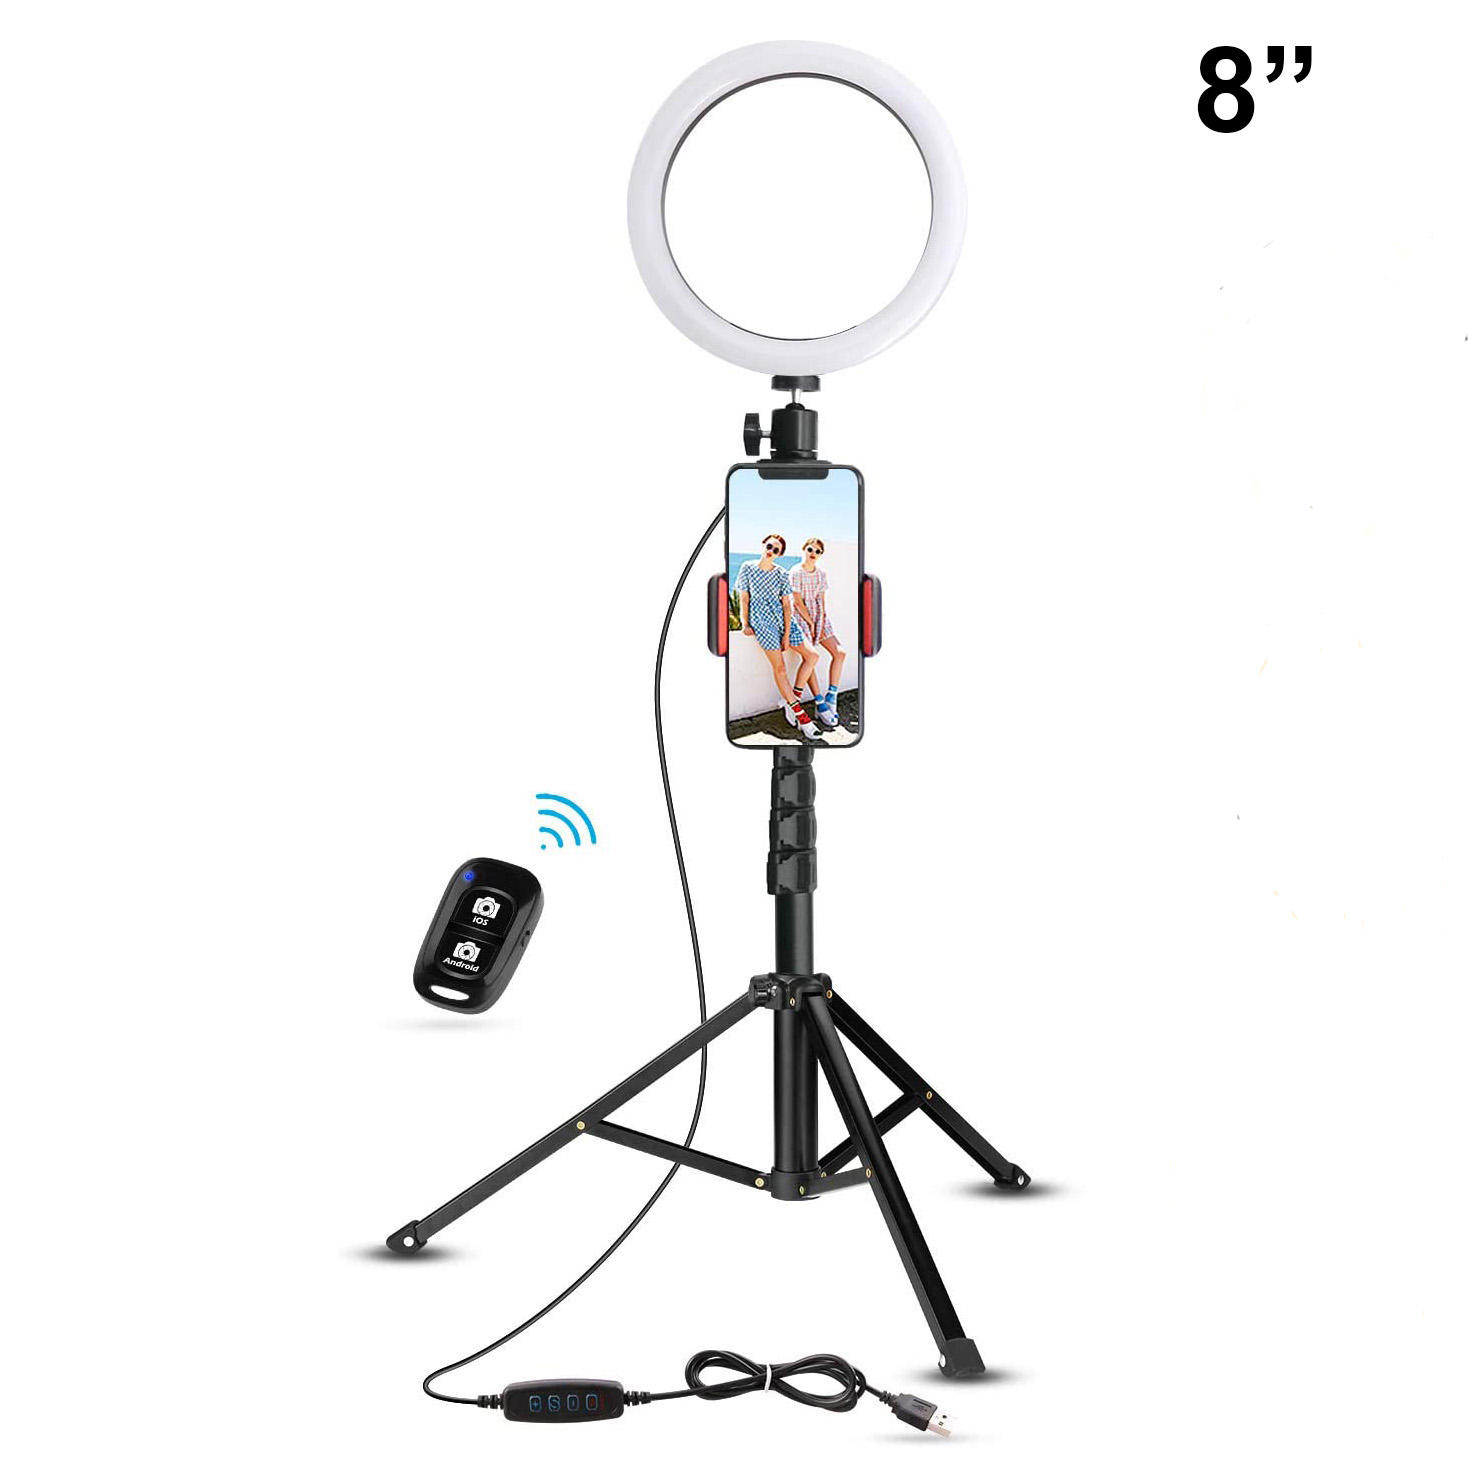 "Selfie Ring Light with Stand, 8"" inch Light Dimmable LED Ring Light with Cell Phone Holder for Live Stream Makeup YouTube Video"